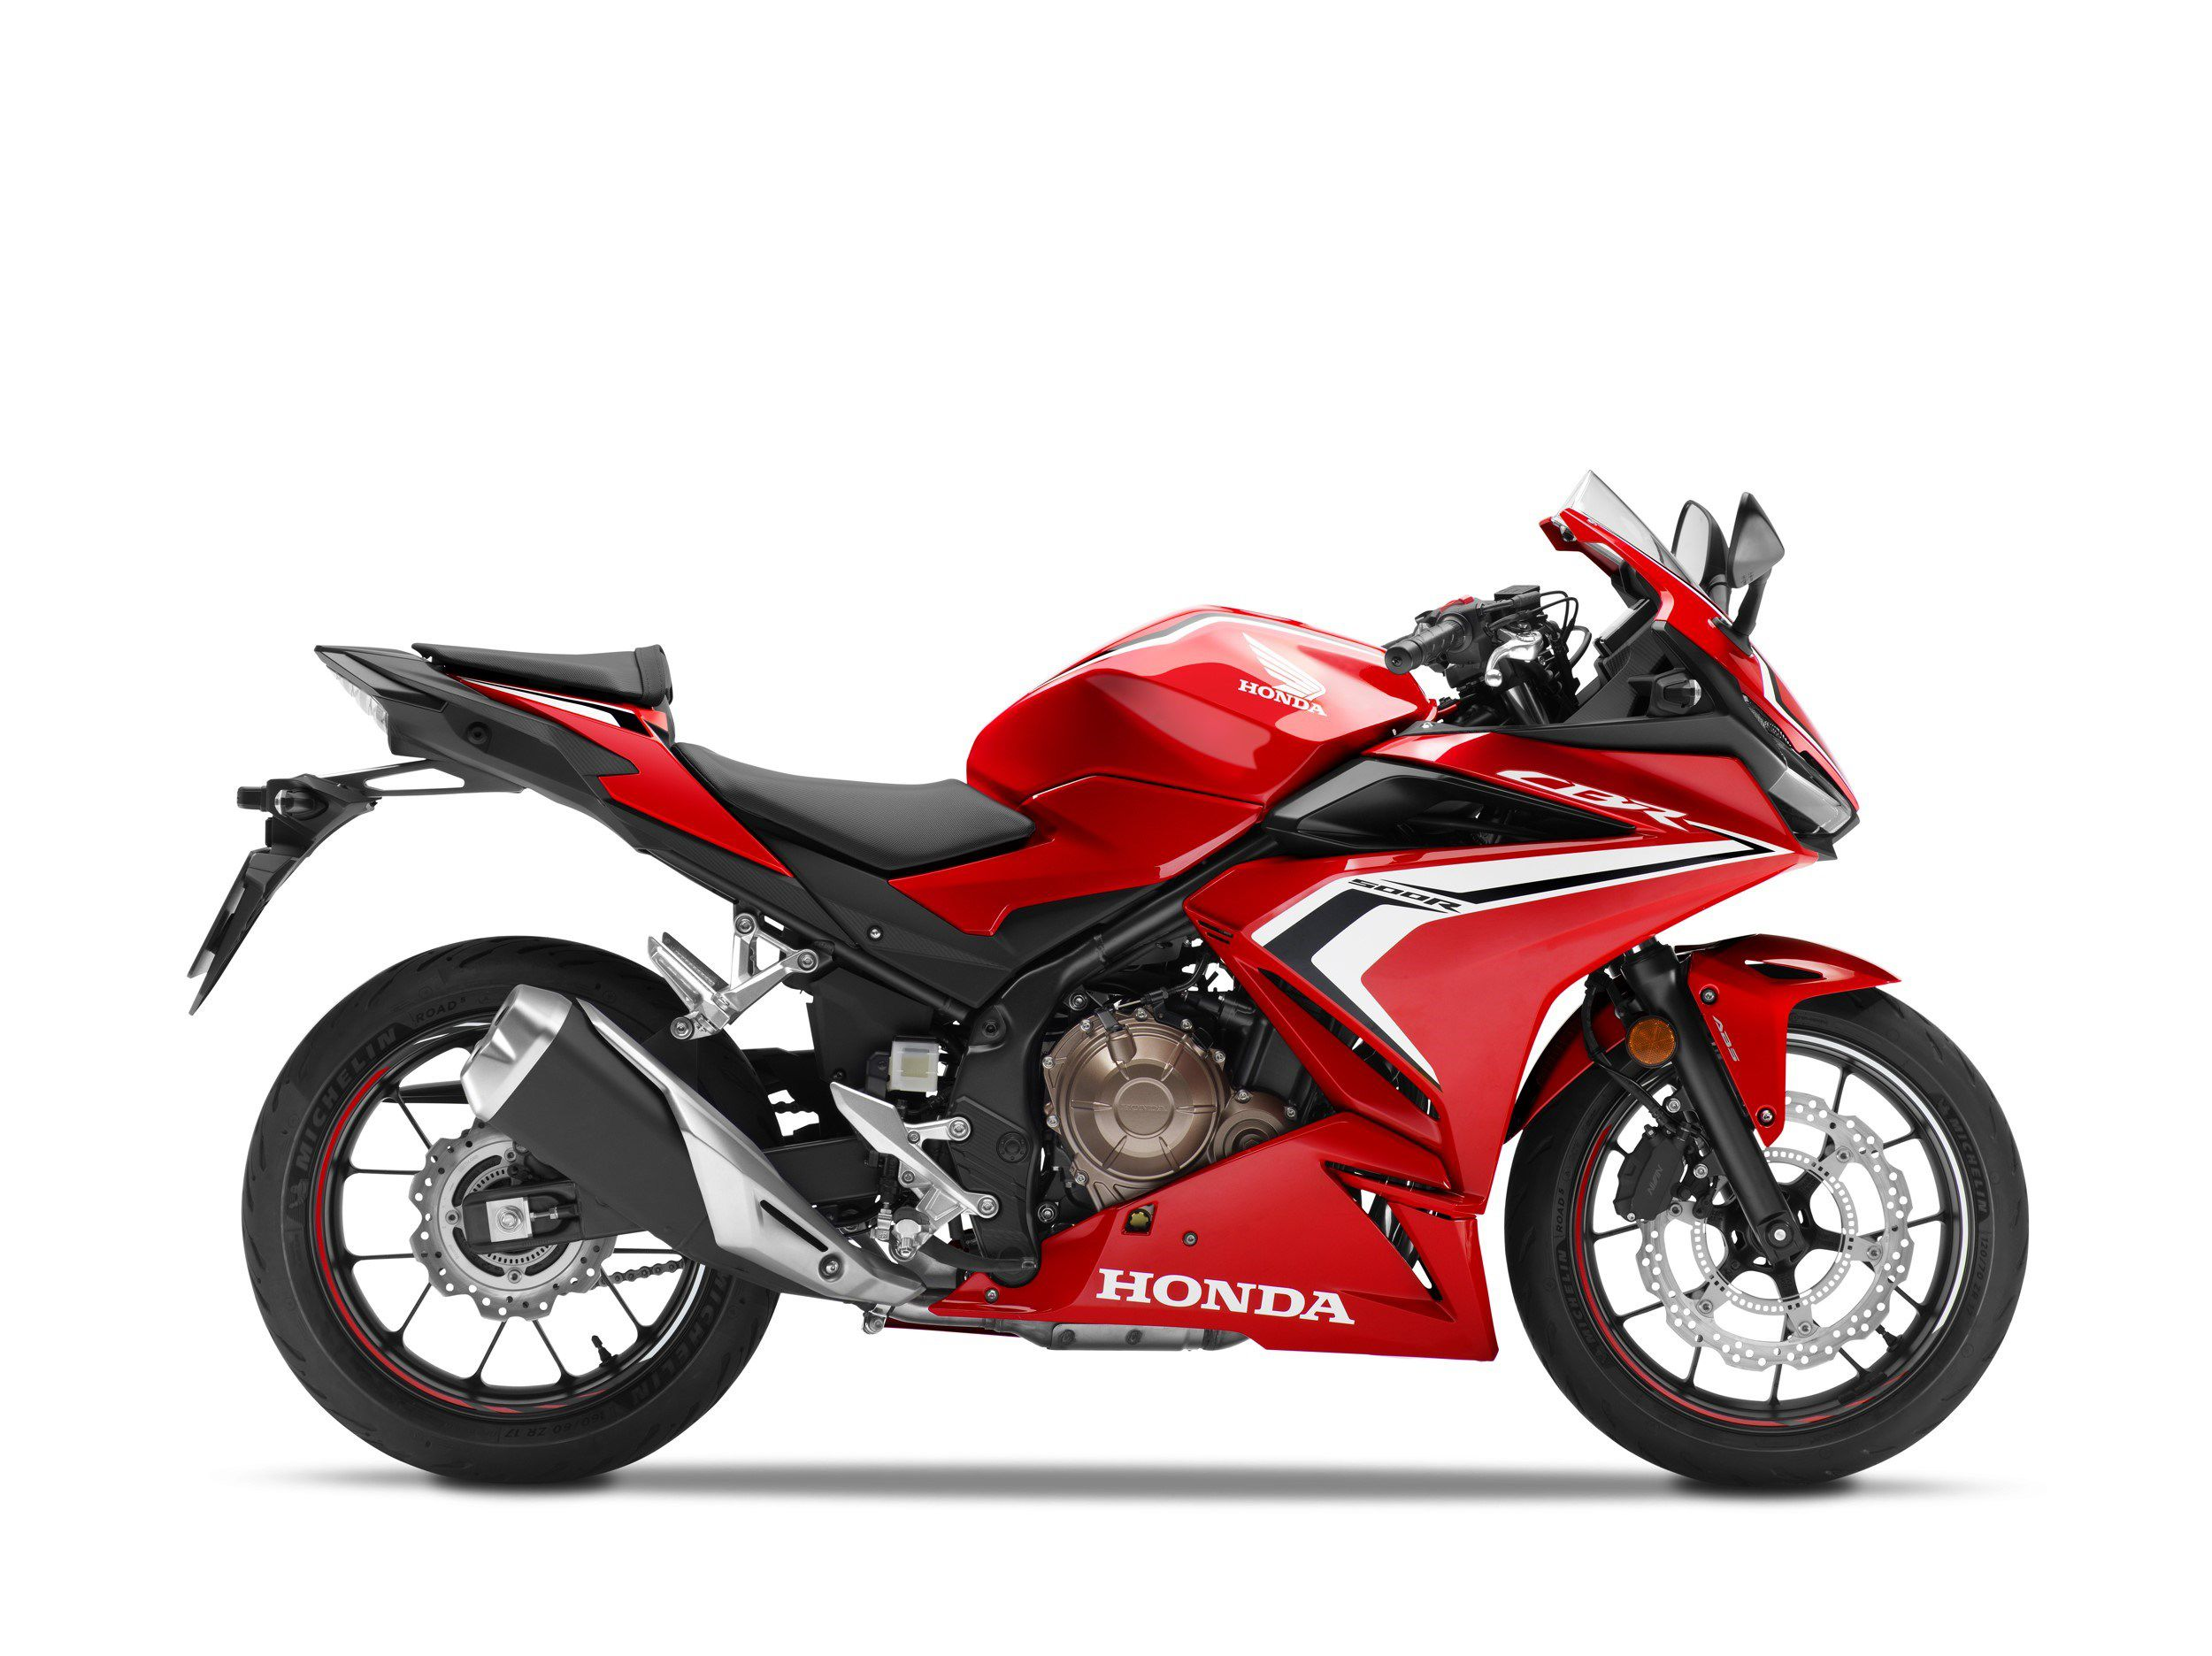 All three models, including the CBR500R (shown is 2021 model)  will be getting an additional brake disc up front; the R may get wider handlebars as well.